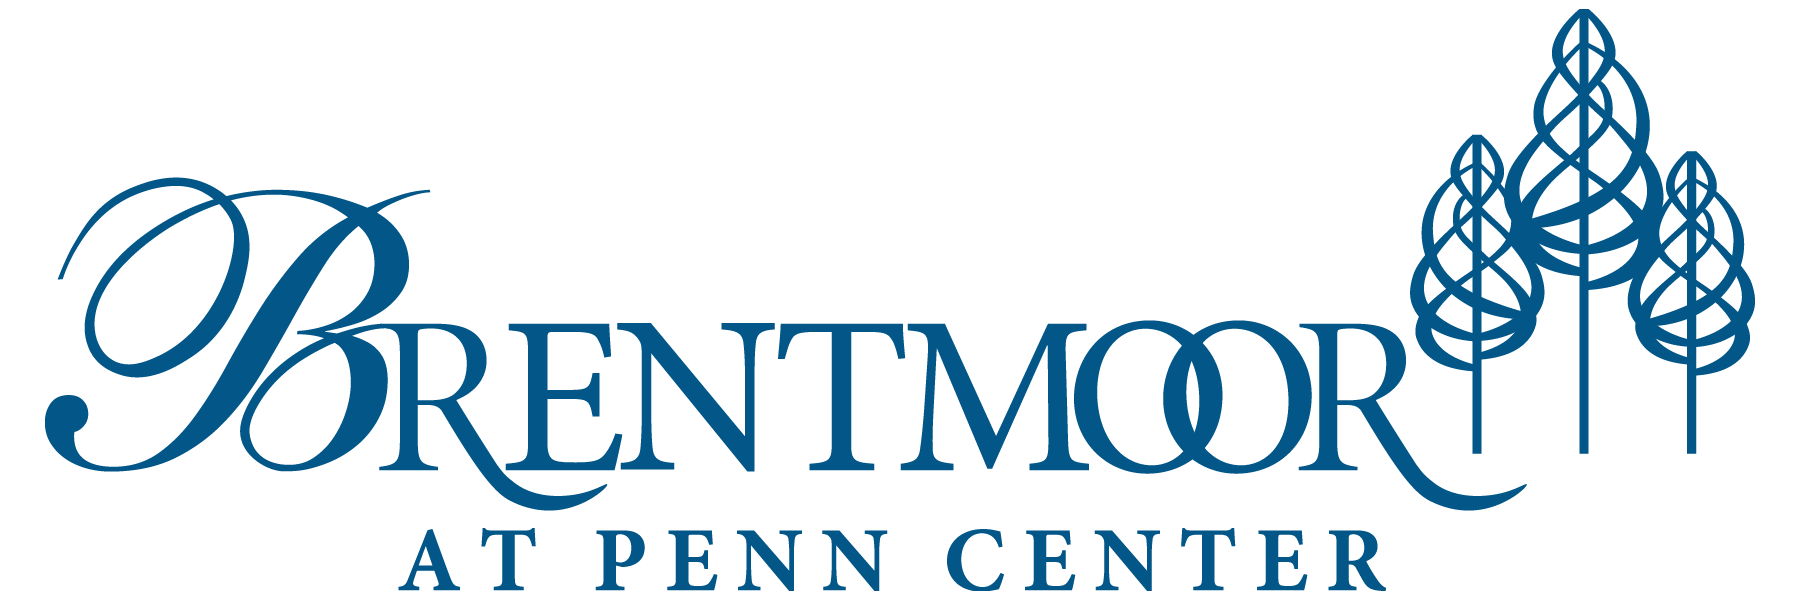 Brentmoor at Penn Center